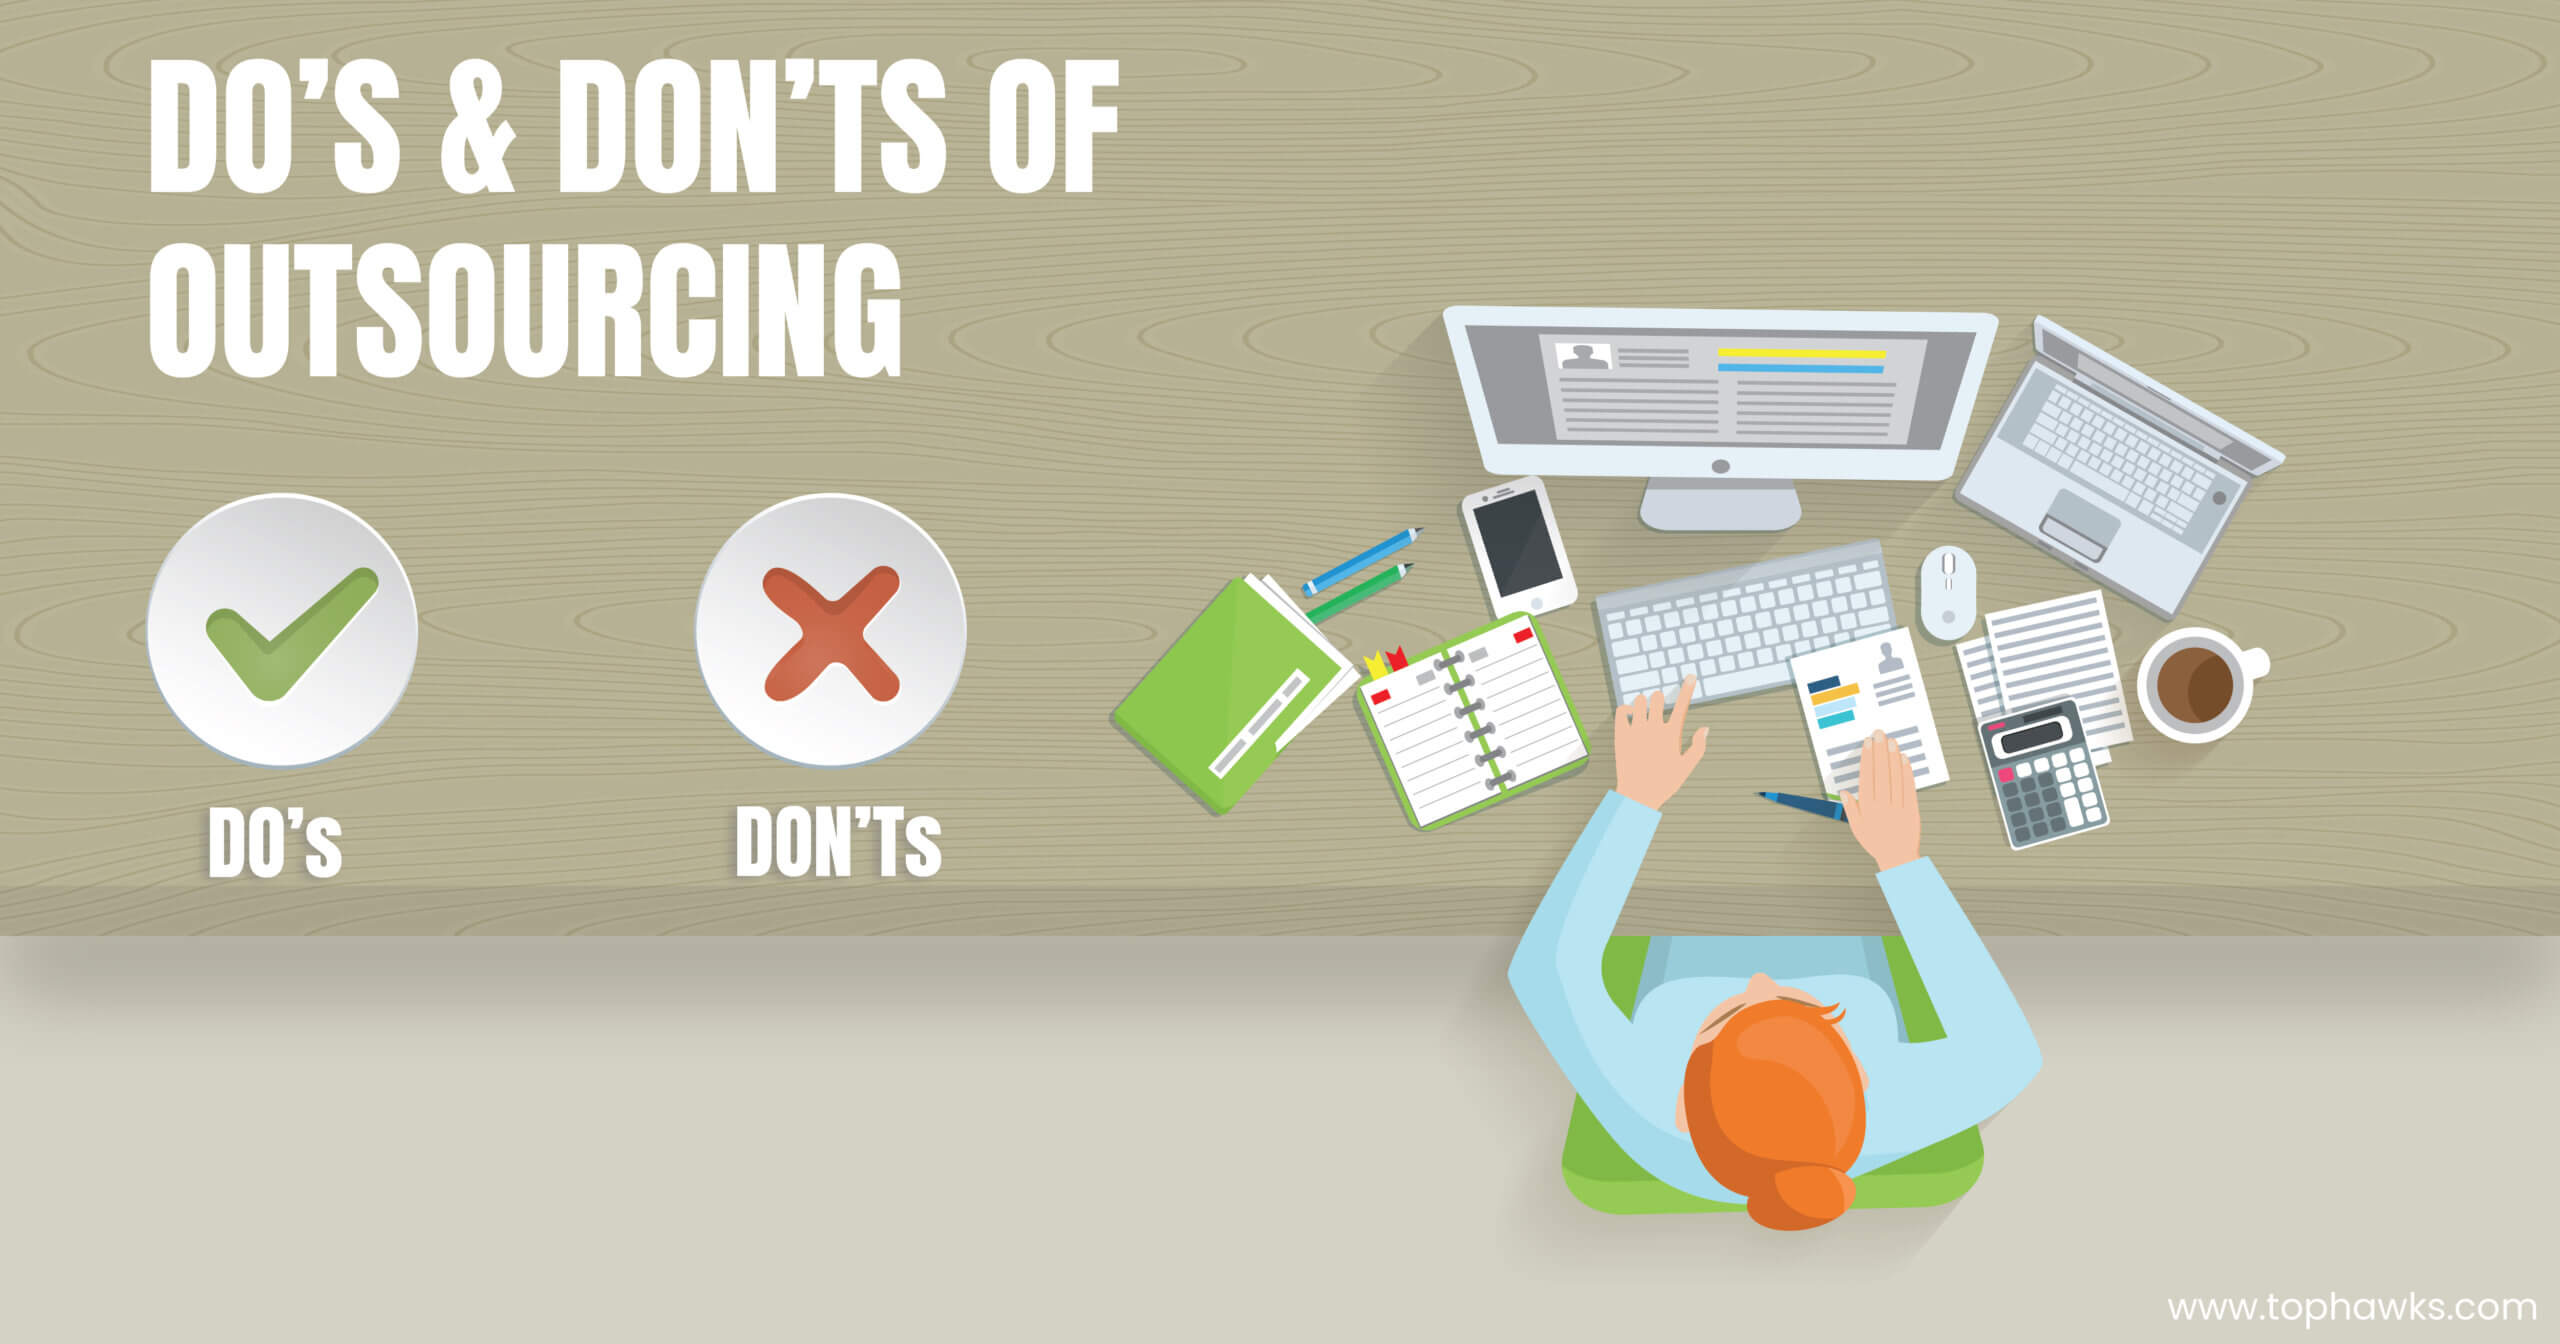 DO'S AND DON'TS OF OUTSOURCING